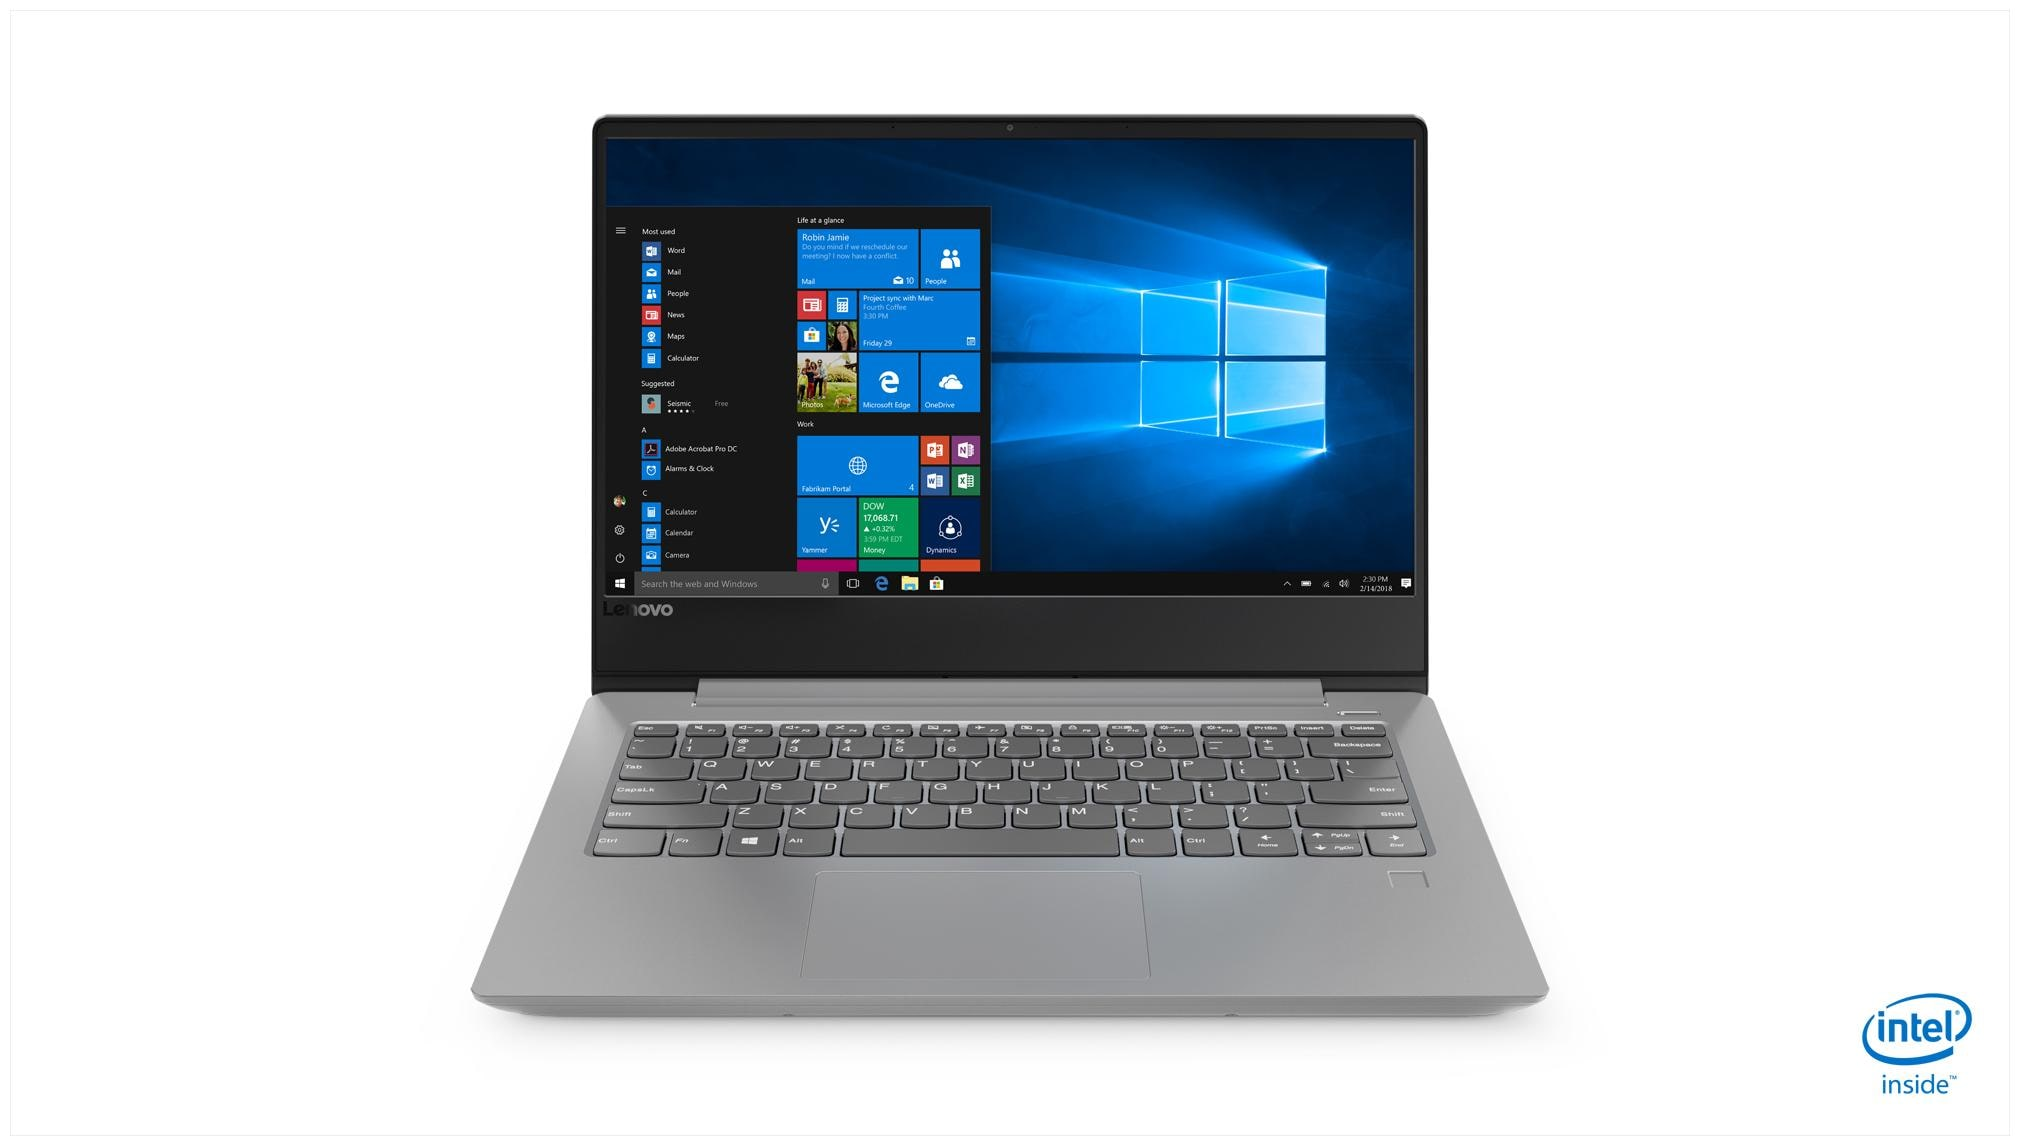 Lenovo Ideapad 330S (Core i5 - 8th Gen/4 GB RAM + 16 GB Optane/1 TB HDD/35.56 cm (14 Inch) FHD/Windows 10) 81F400PFIN Thin and Light Laptop (Platinum Grey, 1.67 Kg)